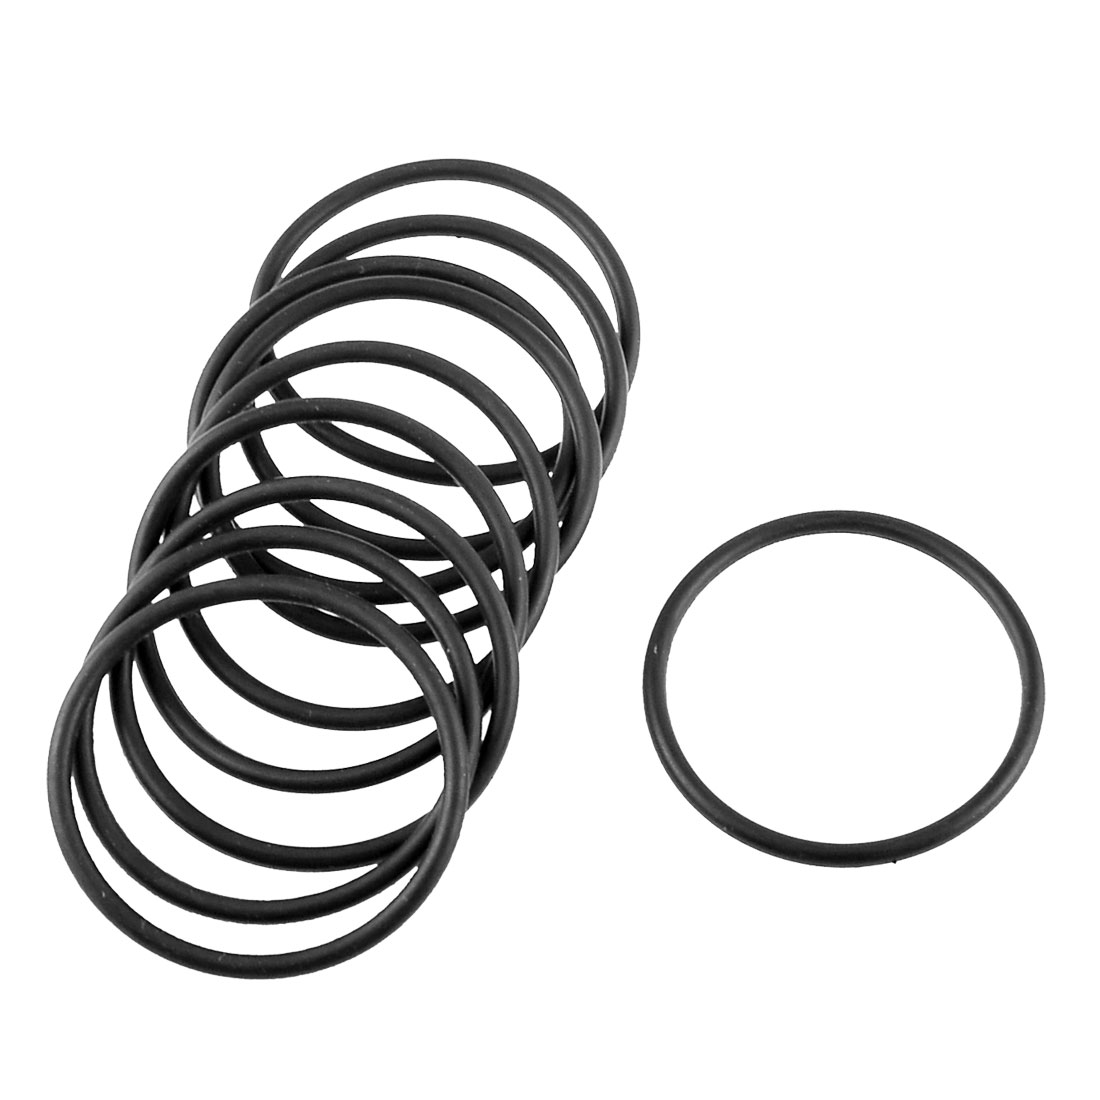 10 x Red Rubber 41mm x 3mm x 35mm Oil Seal O Rings Gaskets Washers